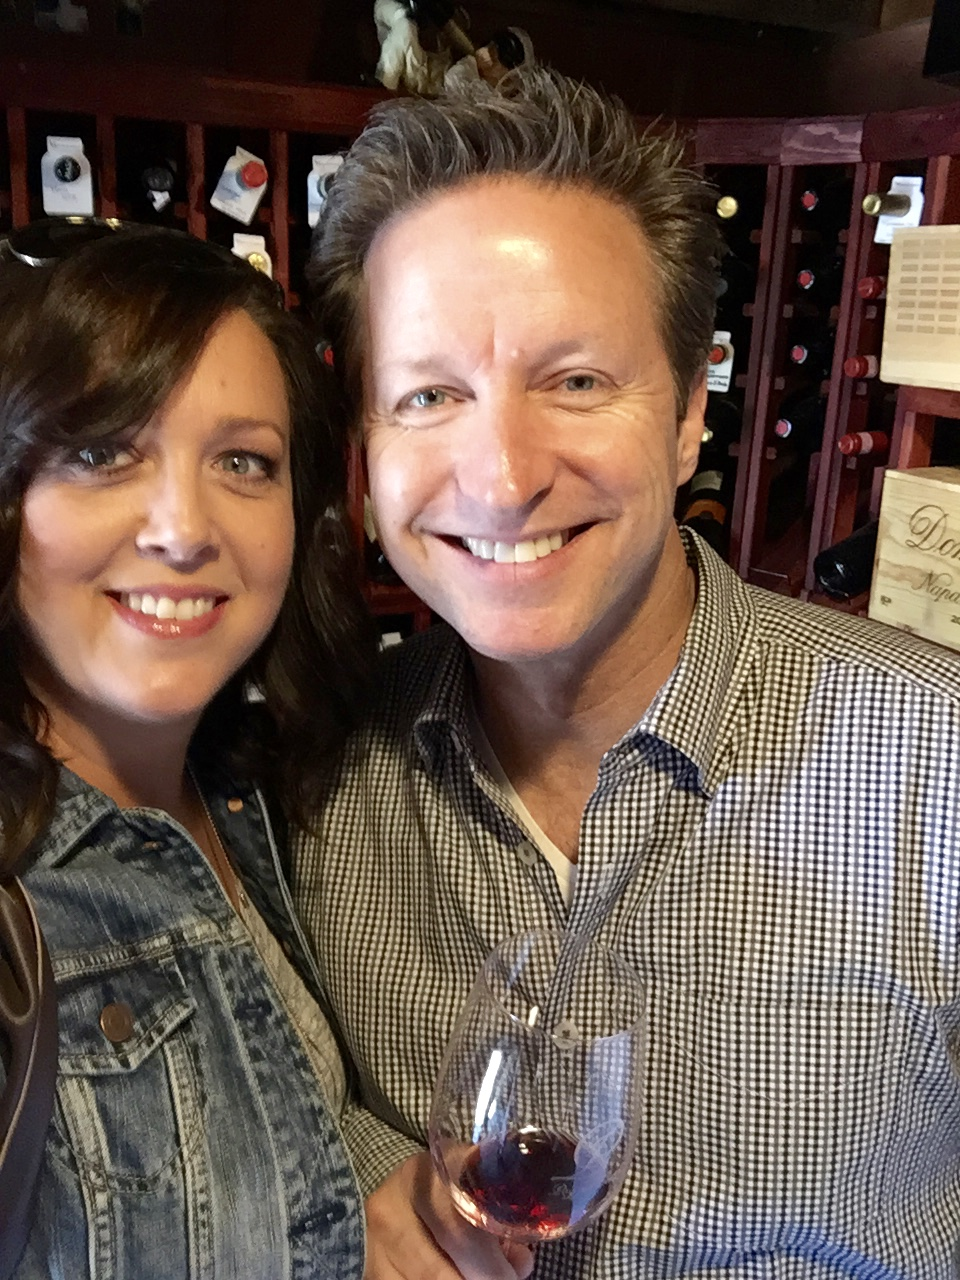 After church on Sunday we went to a wine pick up party at Alex's vineyard.  Each time Alex has wine and cheese and lots of food in his beautiful vineyard and then you pick up your quarterly shipment of wine and olive oil.  It's a great day and a fun time to visit with people!